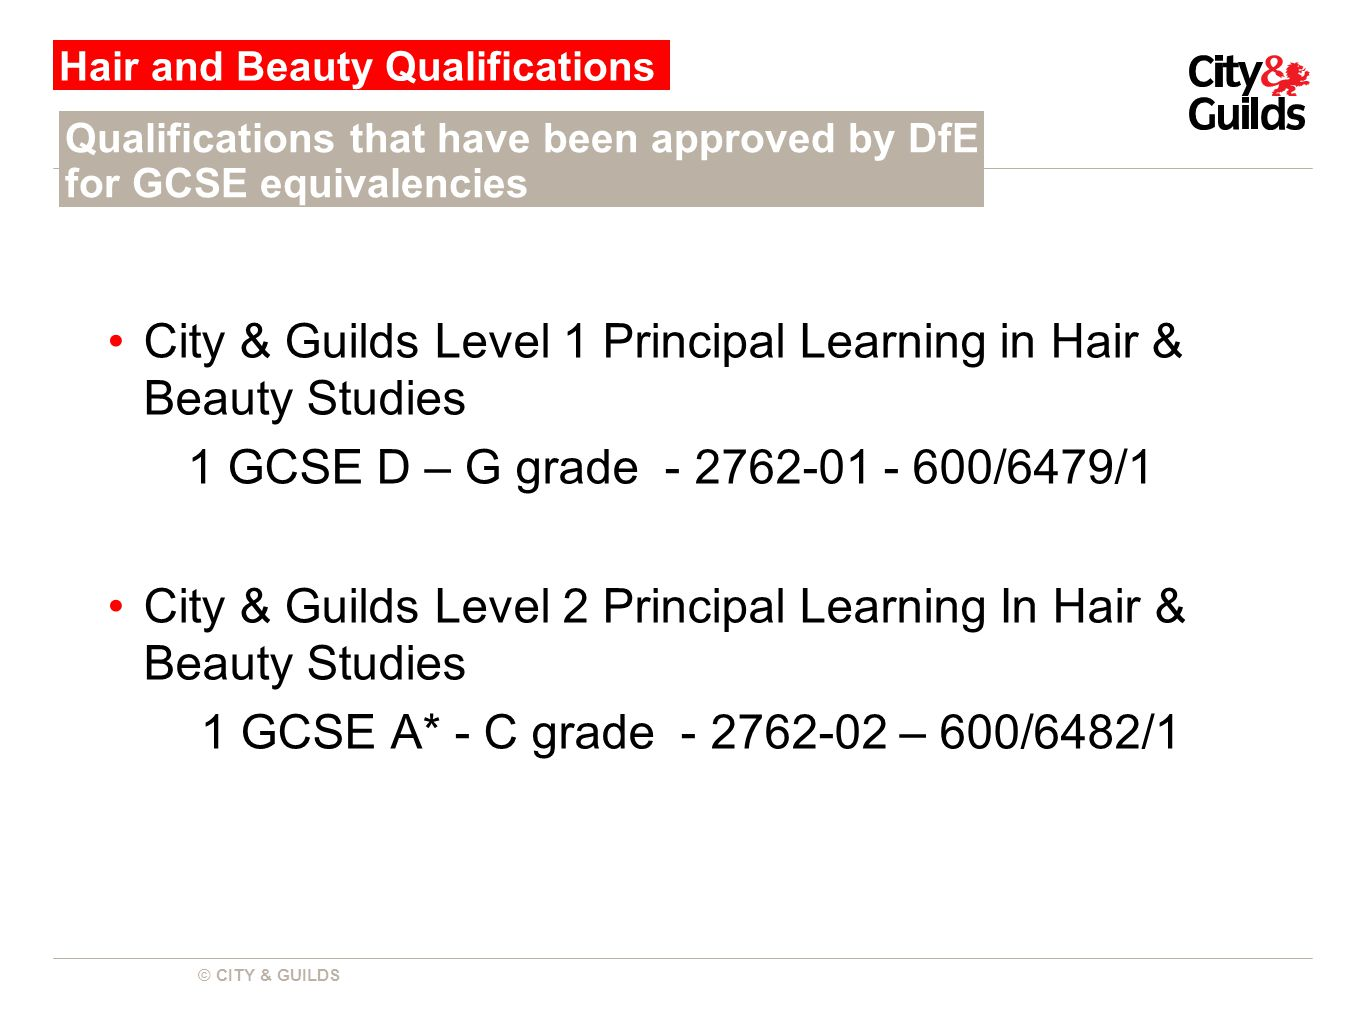 © CITY & GUILDS City & Guilds Level 1 Principal Learning in Hair & Beauty Studies 1 GCSE D – G grade - 2762-01 - 600/6479/1 City & Guilds Level 2 Principal Learning In Hair & Beauty Studies 1 GCSE A* - C grade - 2762-02 – 600/6482/1 Hair and Beauty Qualifications Qualifications that have been approved by DfE for GCSE equivalencies